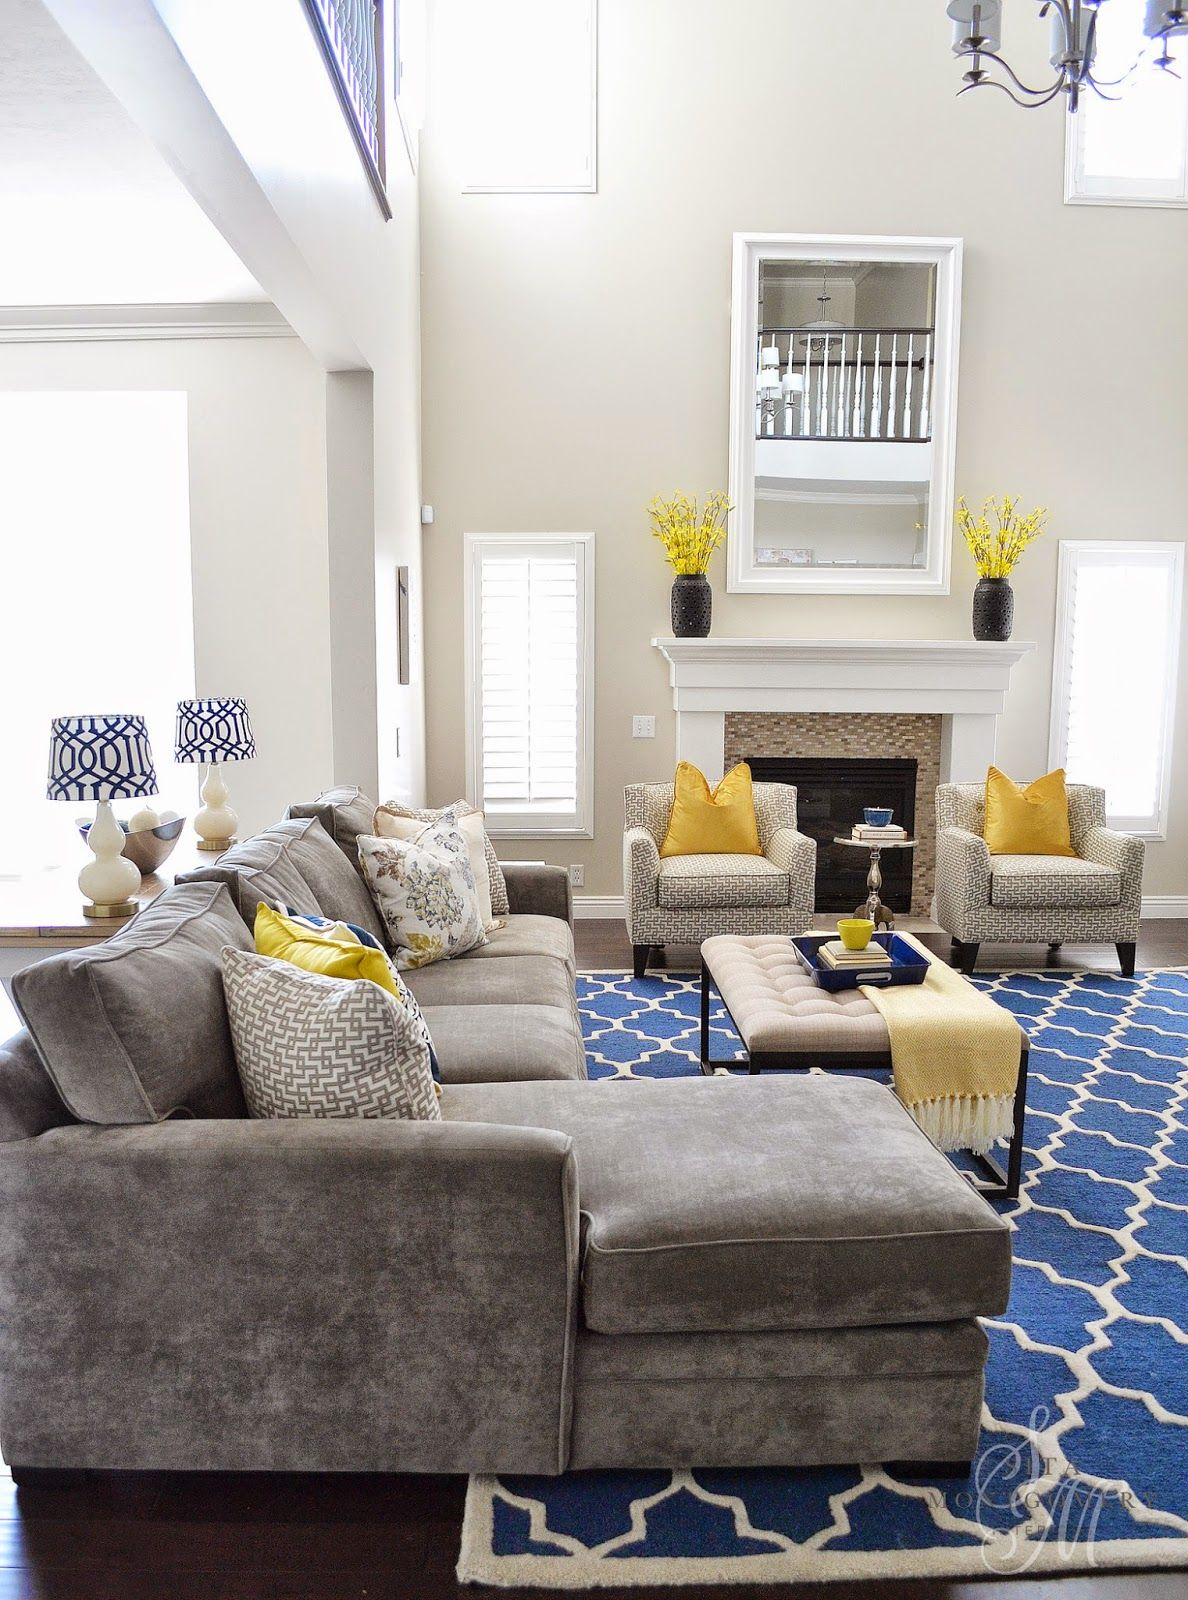 Navy blue and yellow living room - I Love This Grey Sectional Blue Rug And Yellow Accents If We Ever Put Hardwood In The Great Room I Want This Rug We Already Have Yellow Walls And I Ve